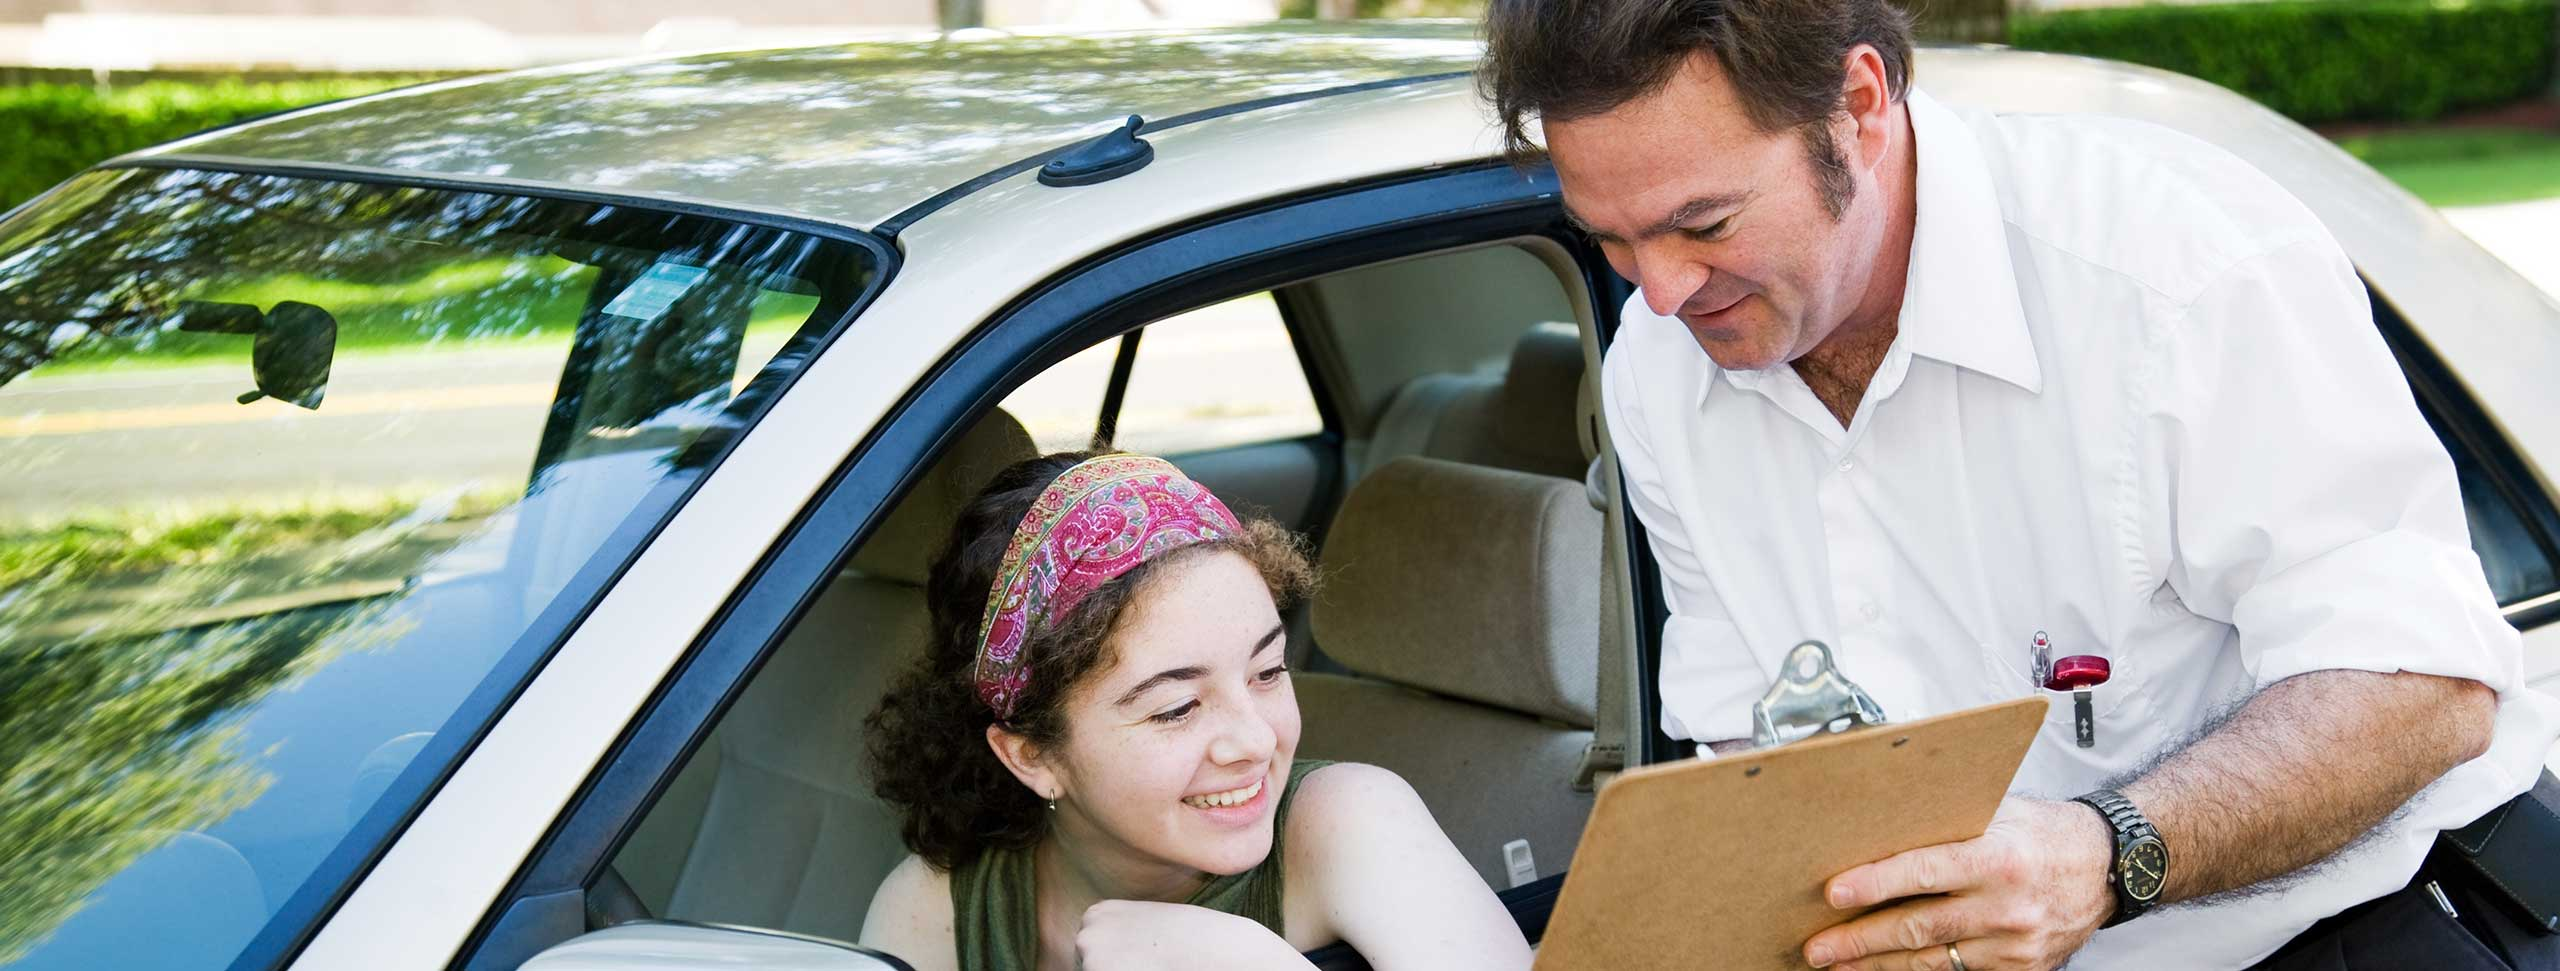 4 tips to help you do well on your driving test